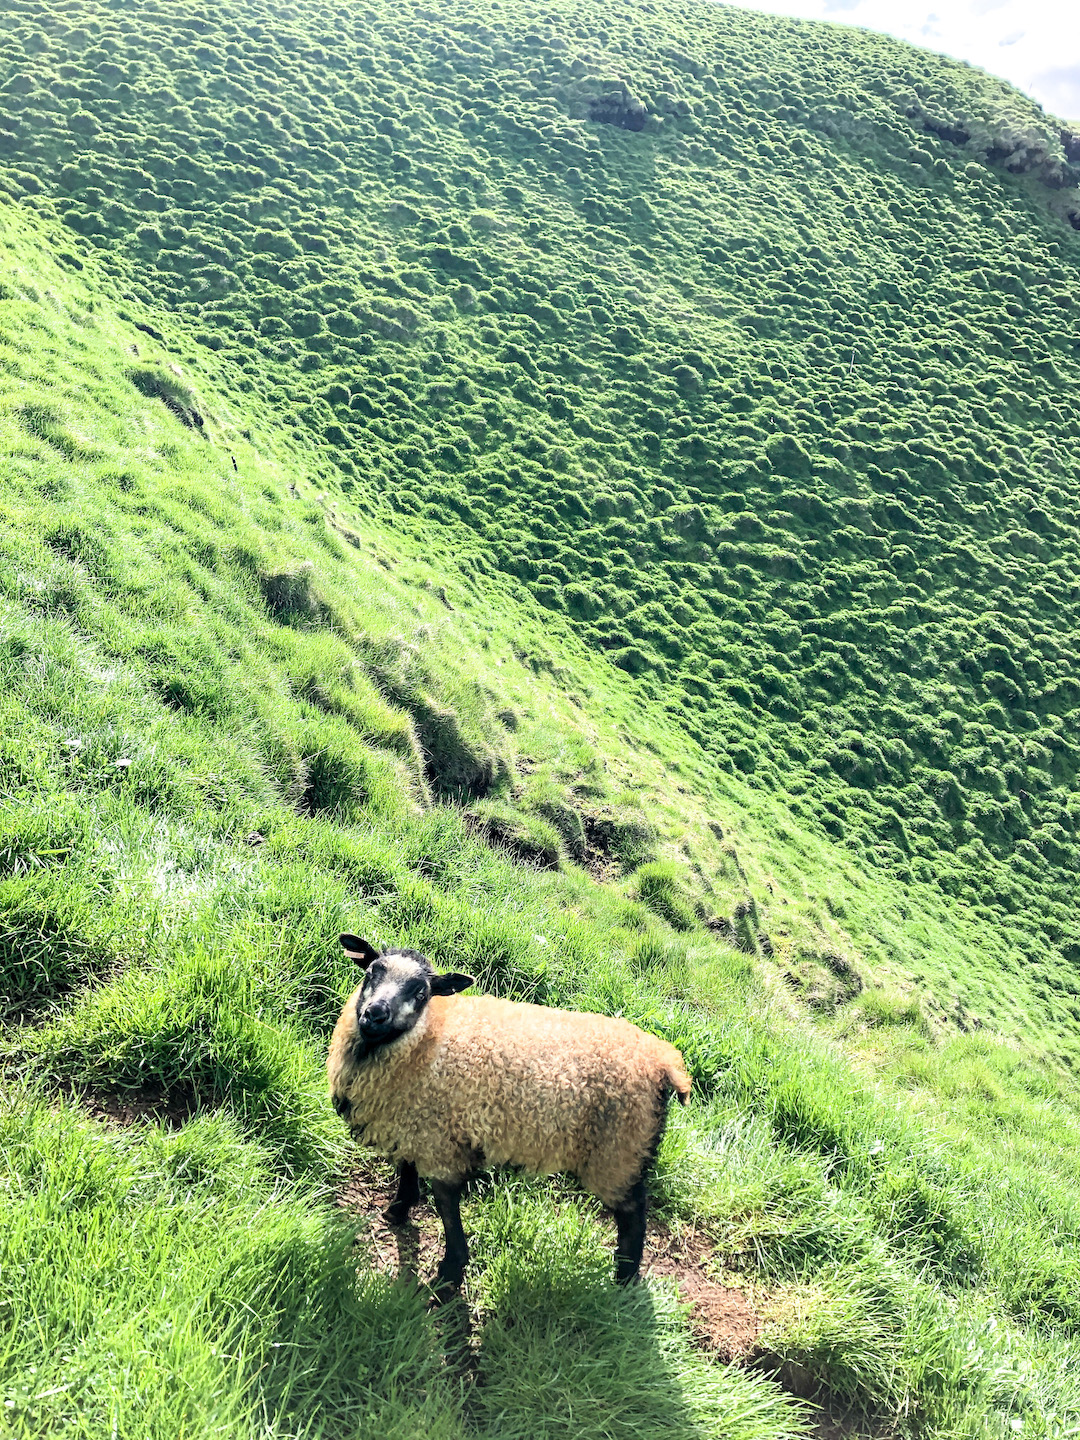 Her_Travel_Edit_Iceland_Icelandic_Sheep